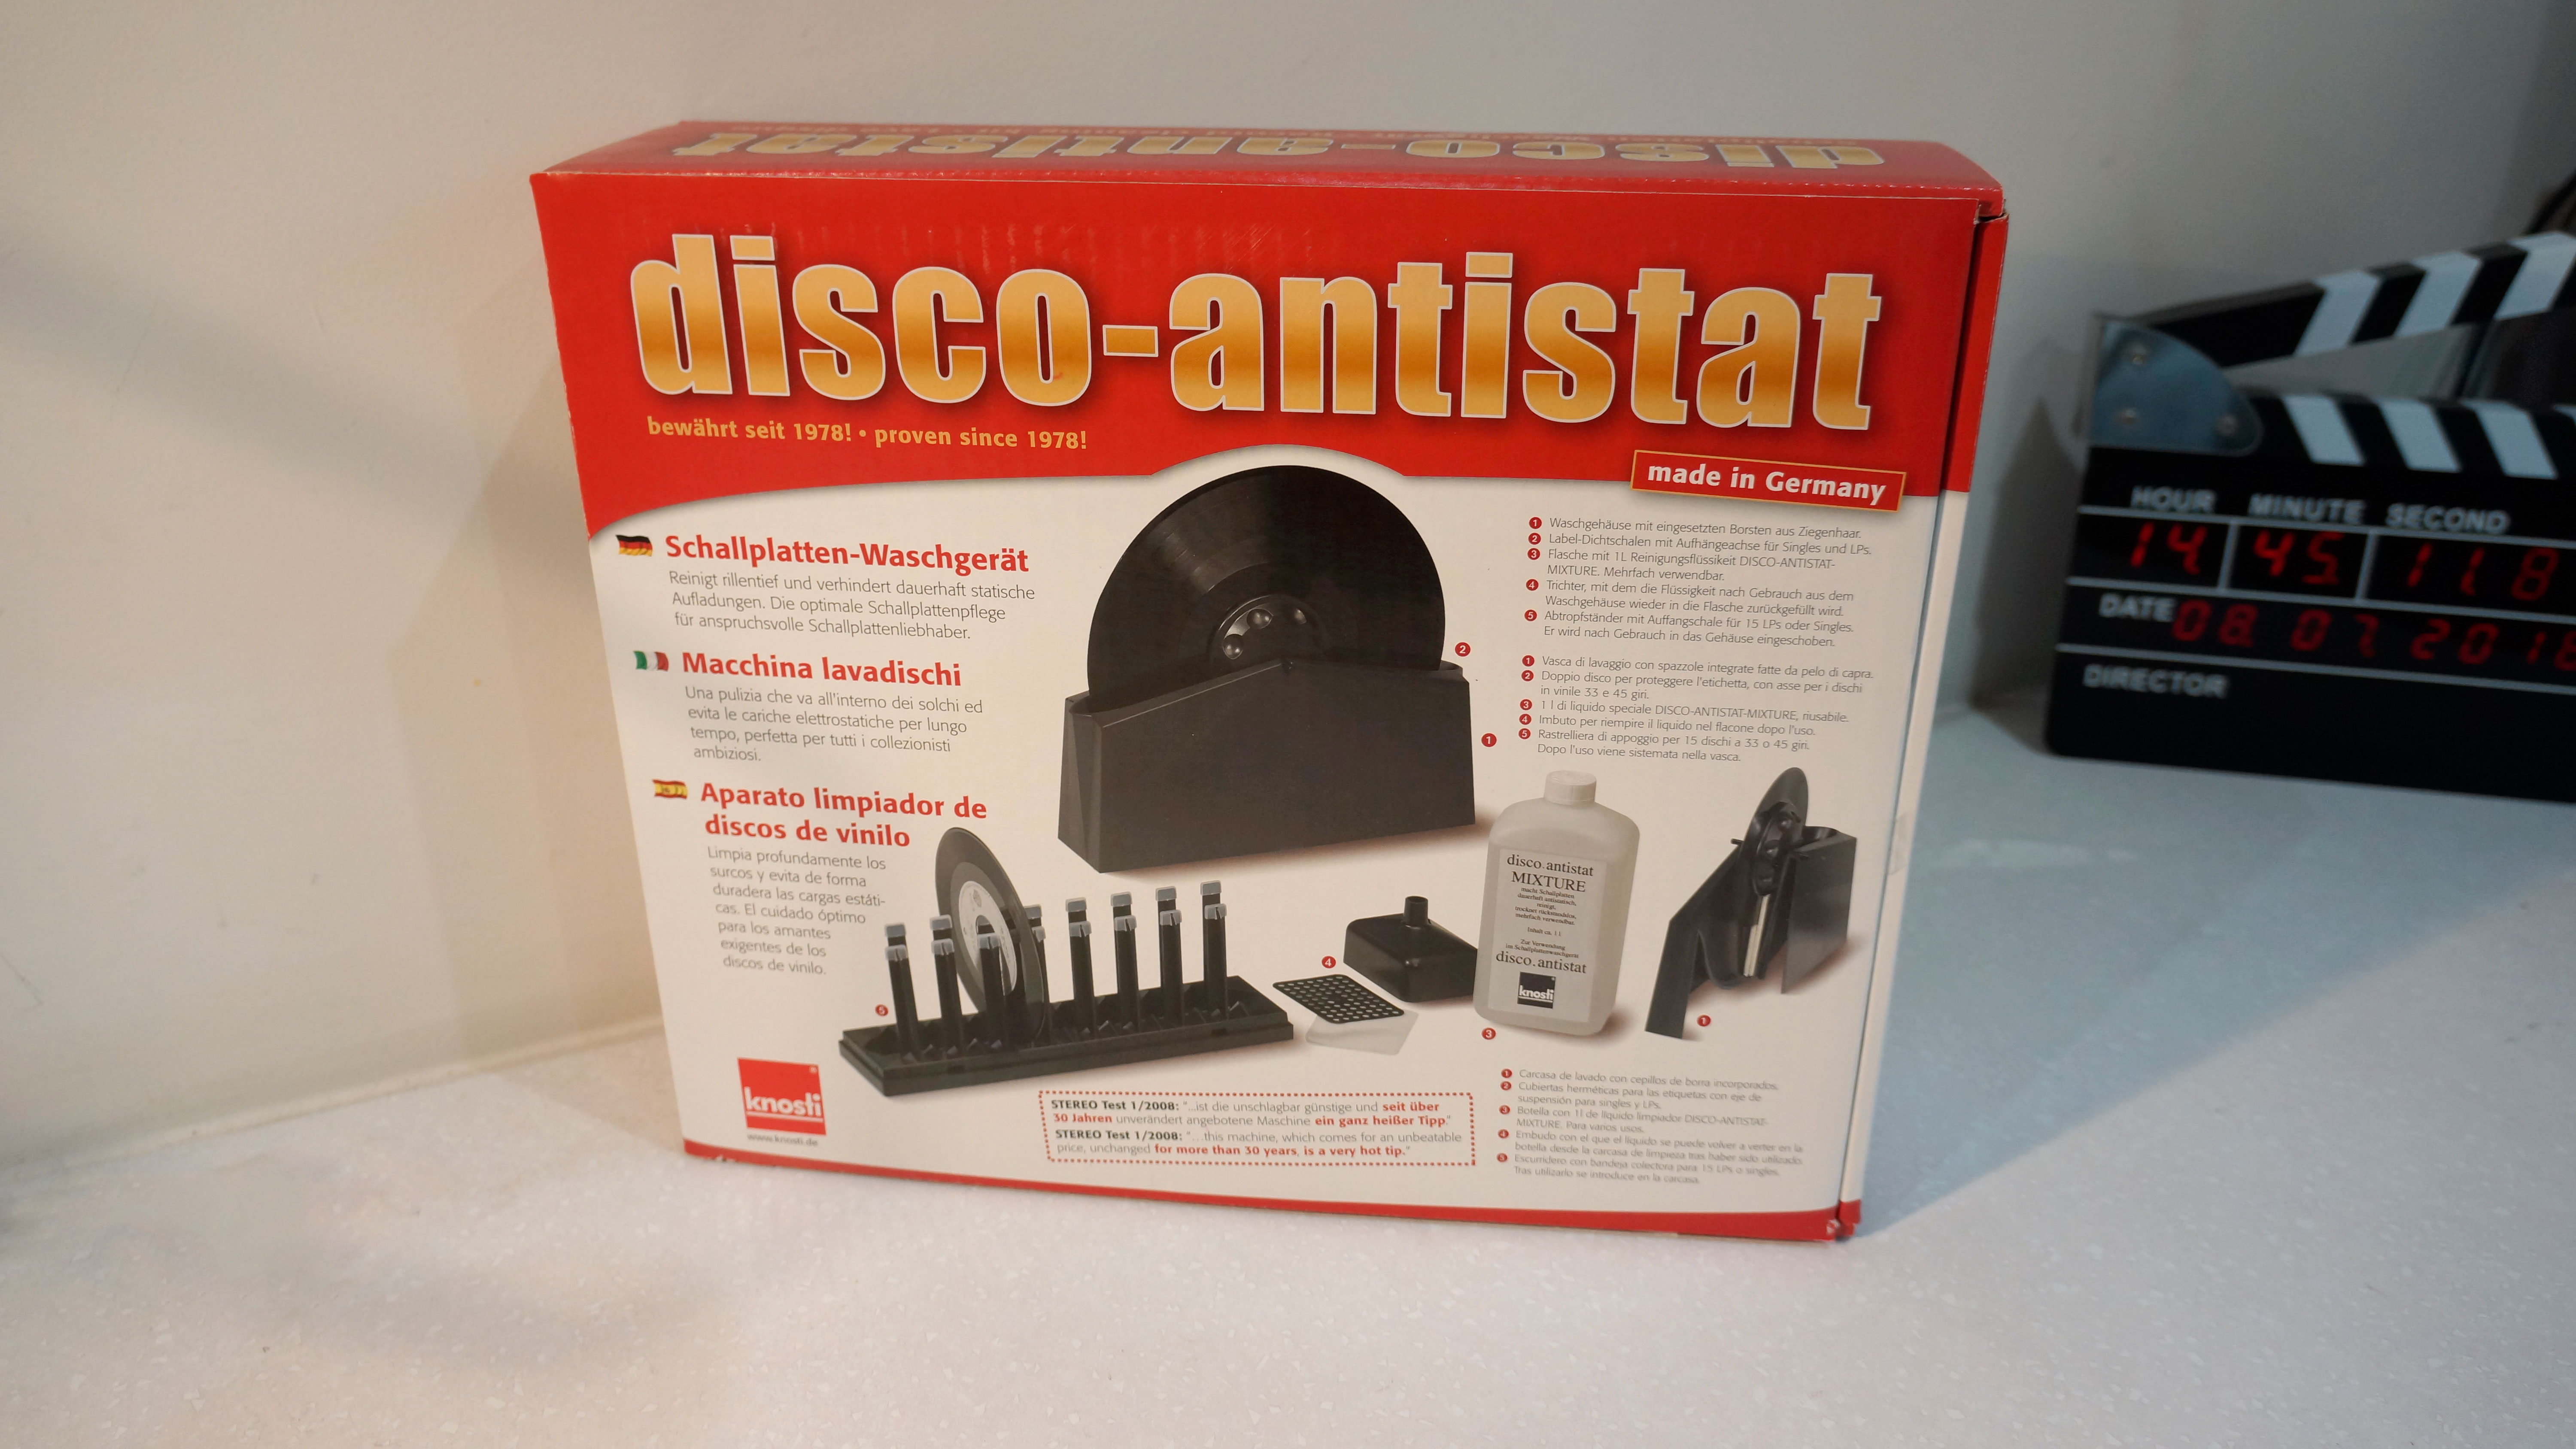 Knosti Disco Antistat Record Cleaner Review Stereonet